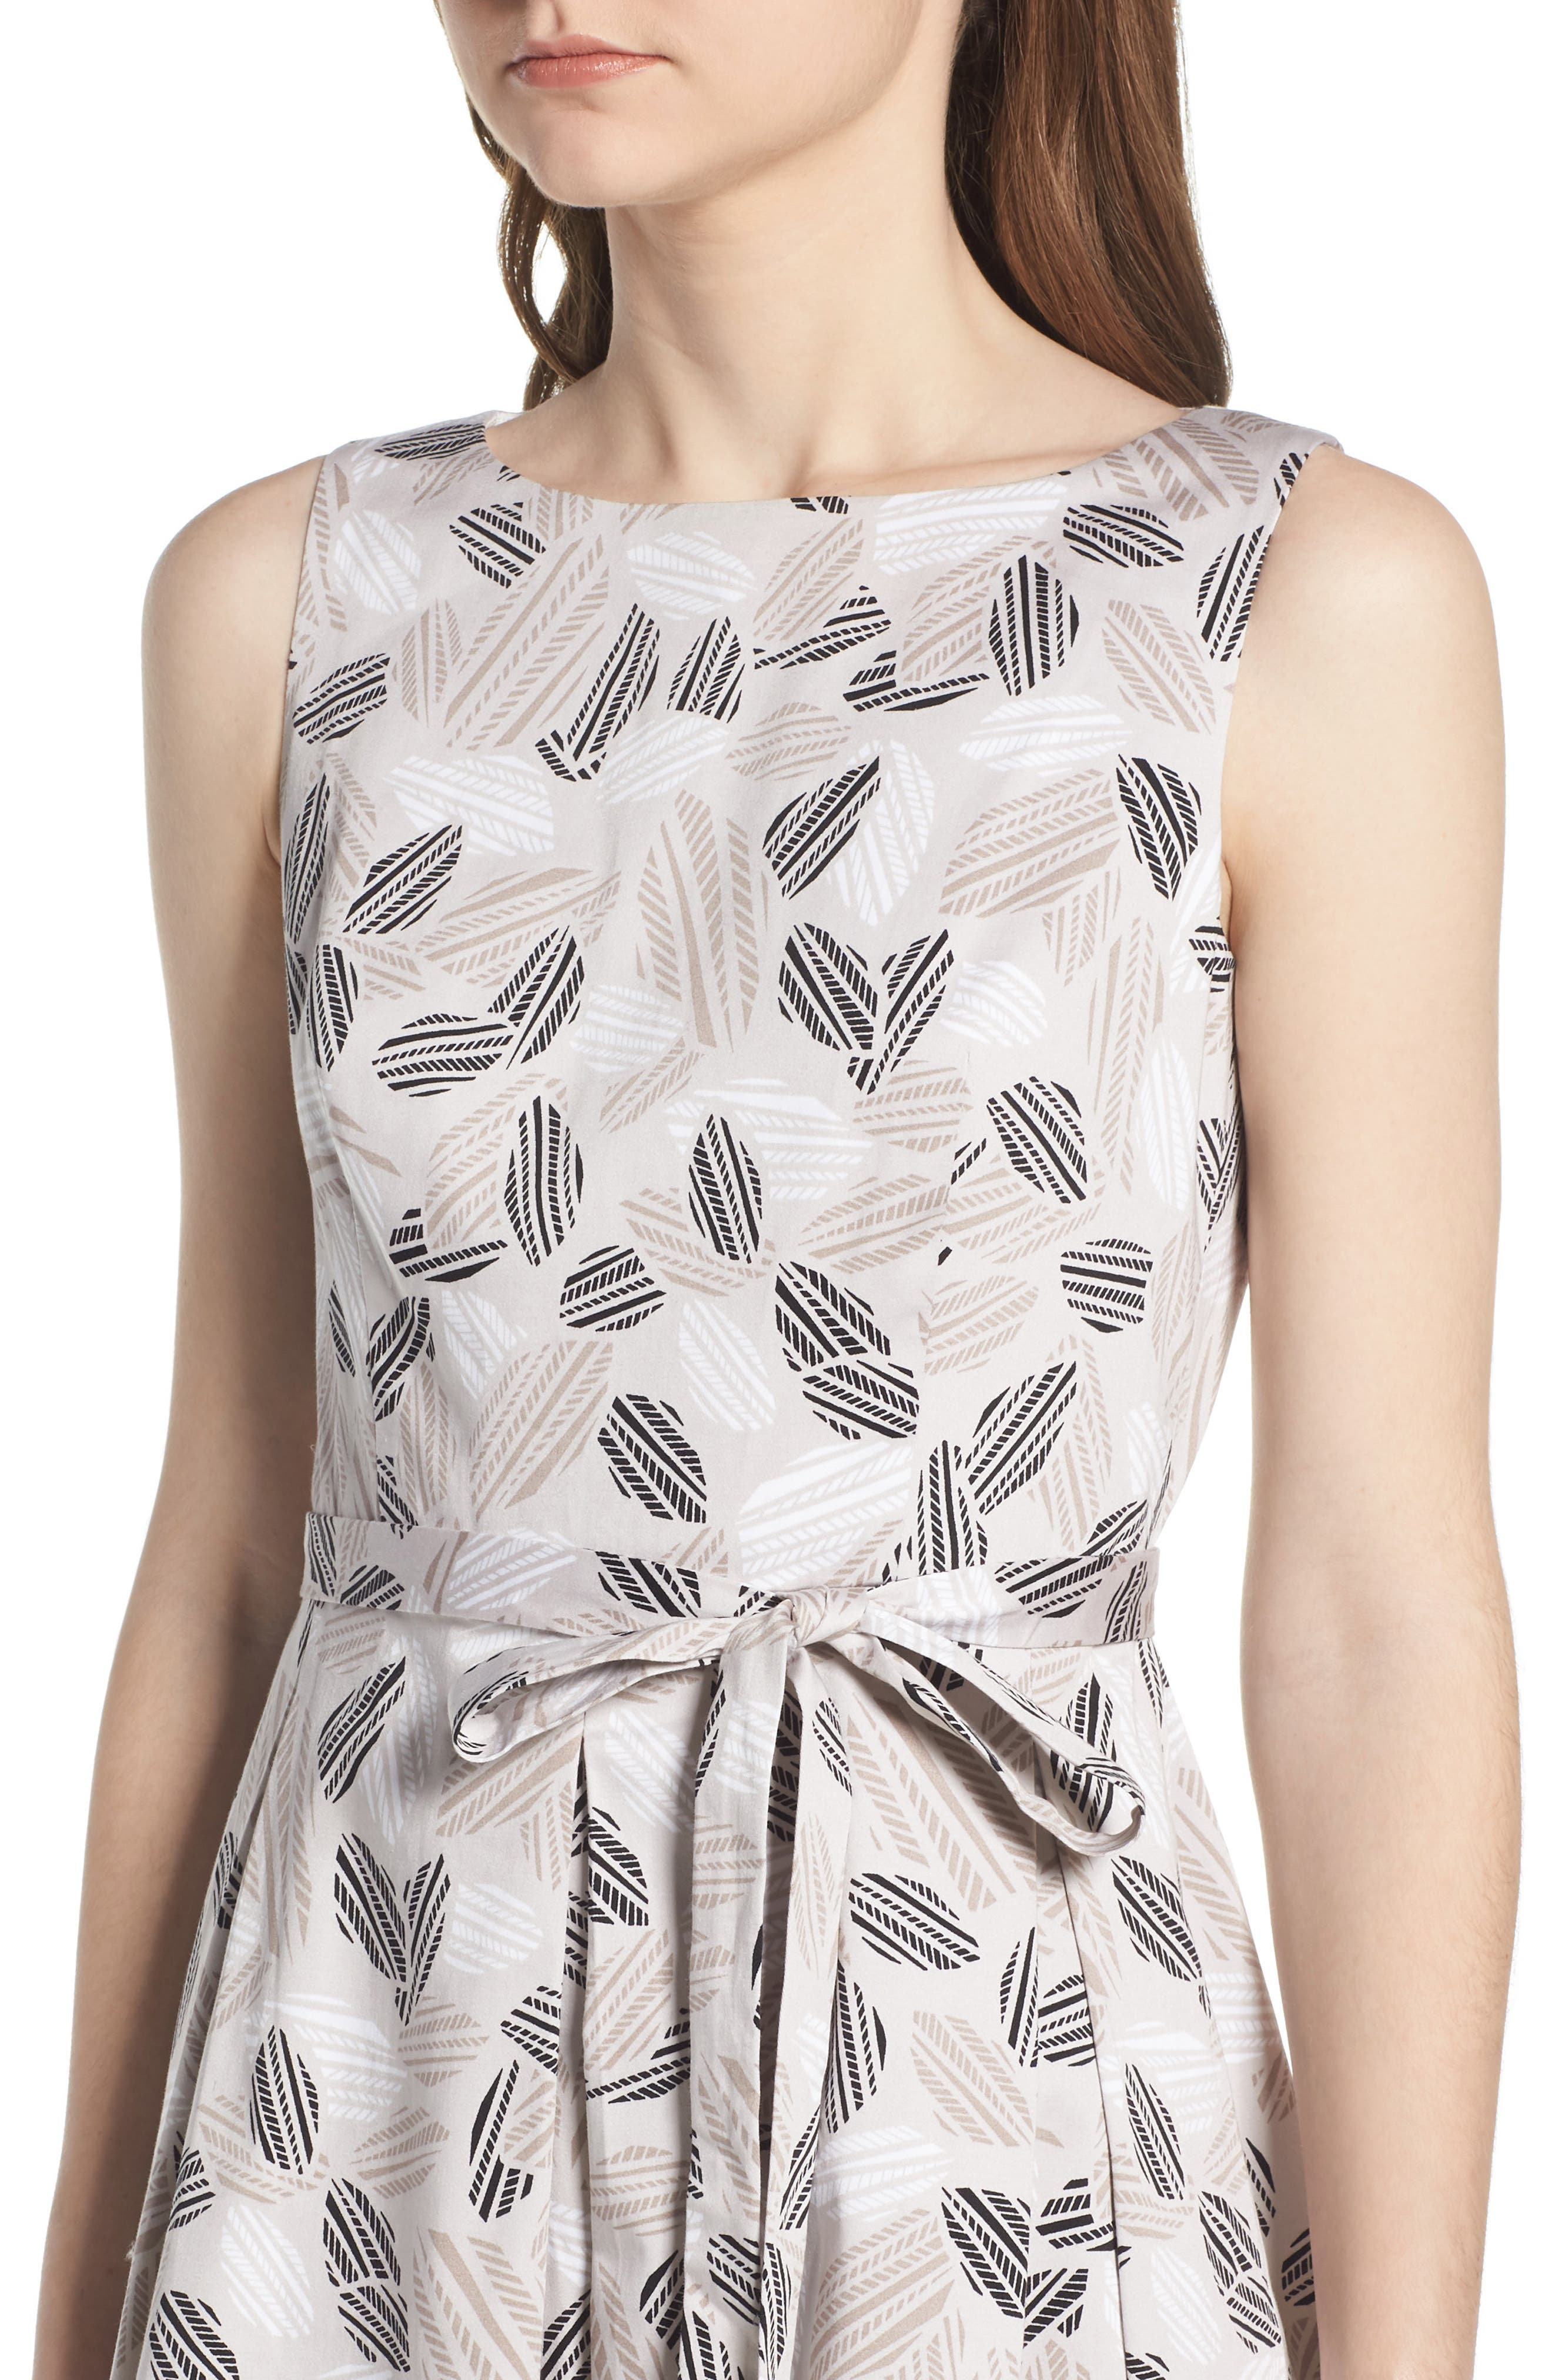 Leaf Print Fit And Flare Dress,                             Alternate thumbnail 4, color,                             Parchment/ Oyster Shell Combo